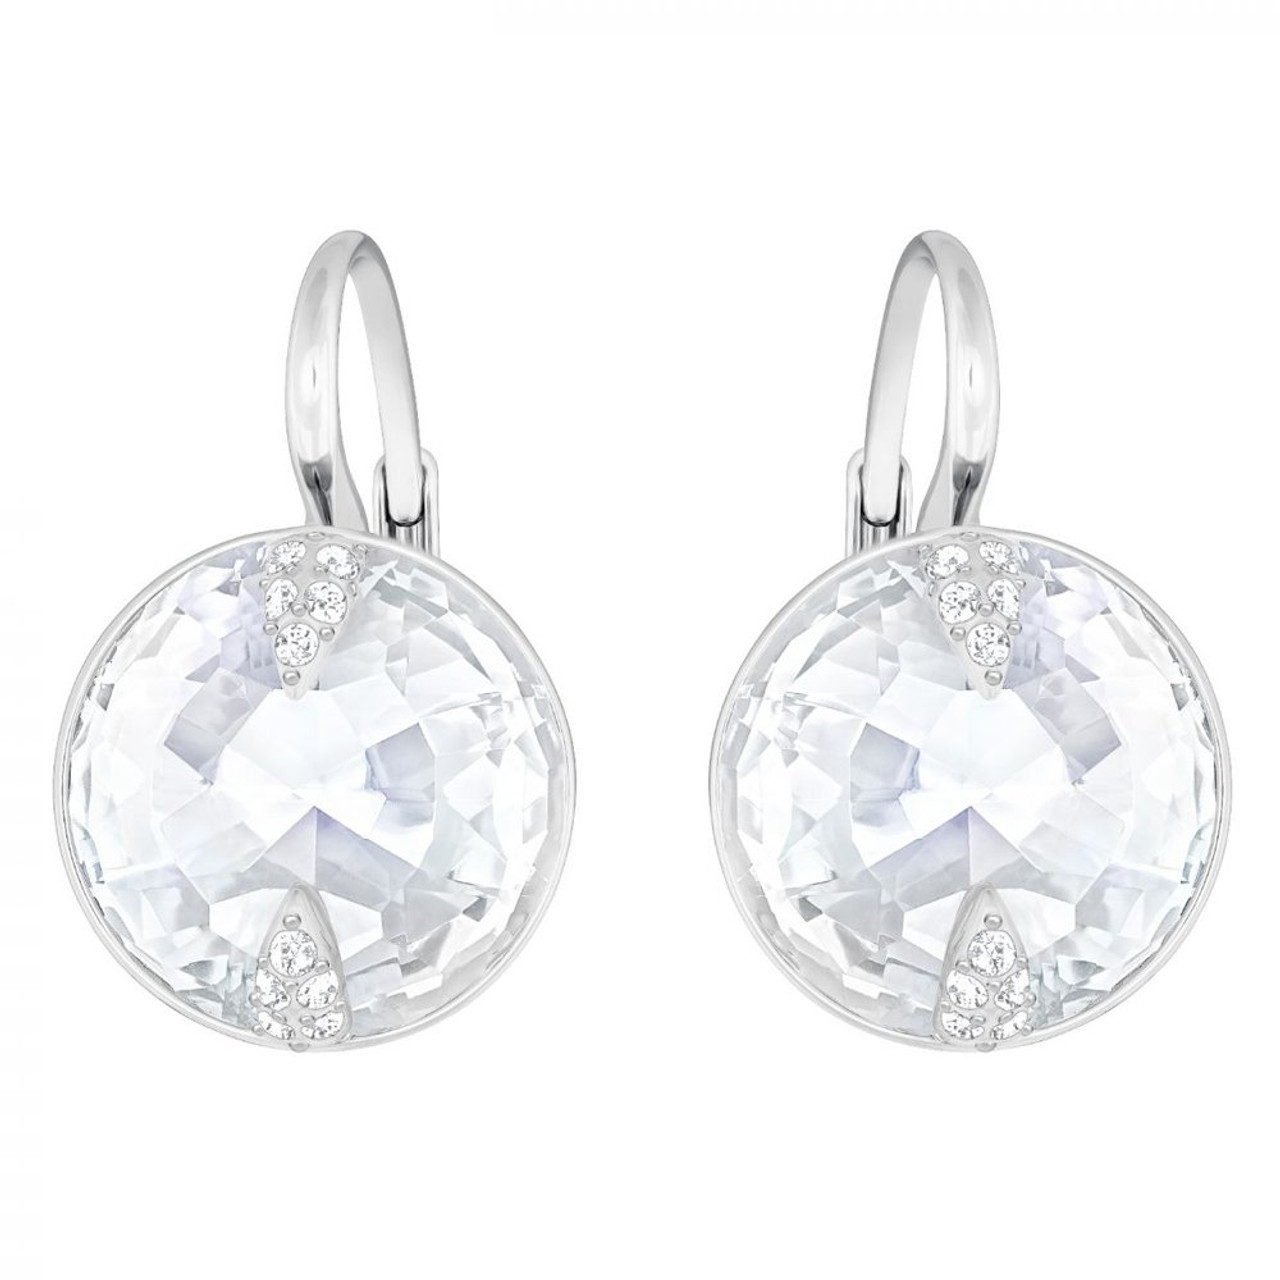 Swarovski Globe Leverback Earrings, White